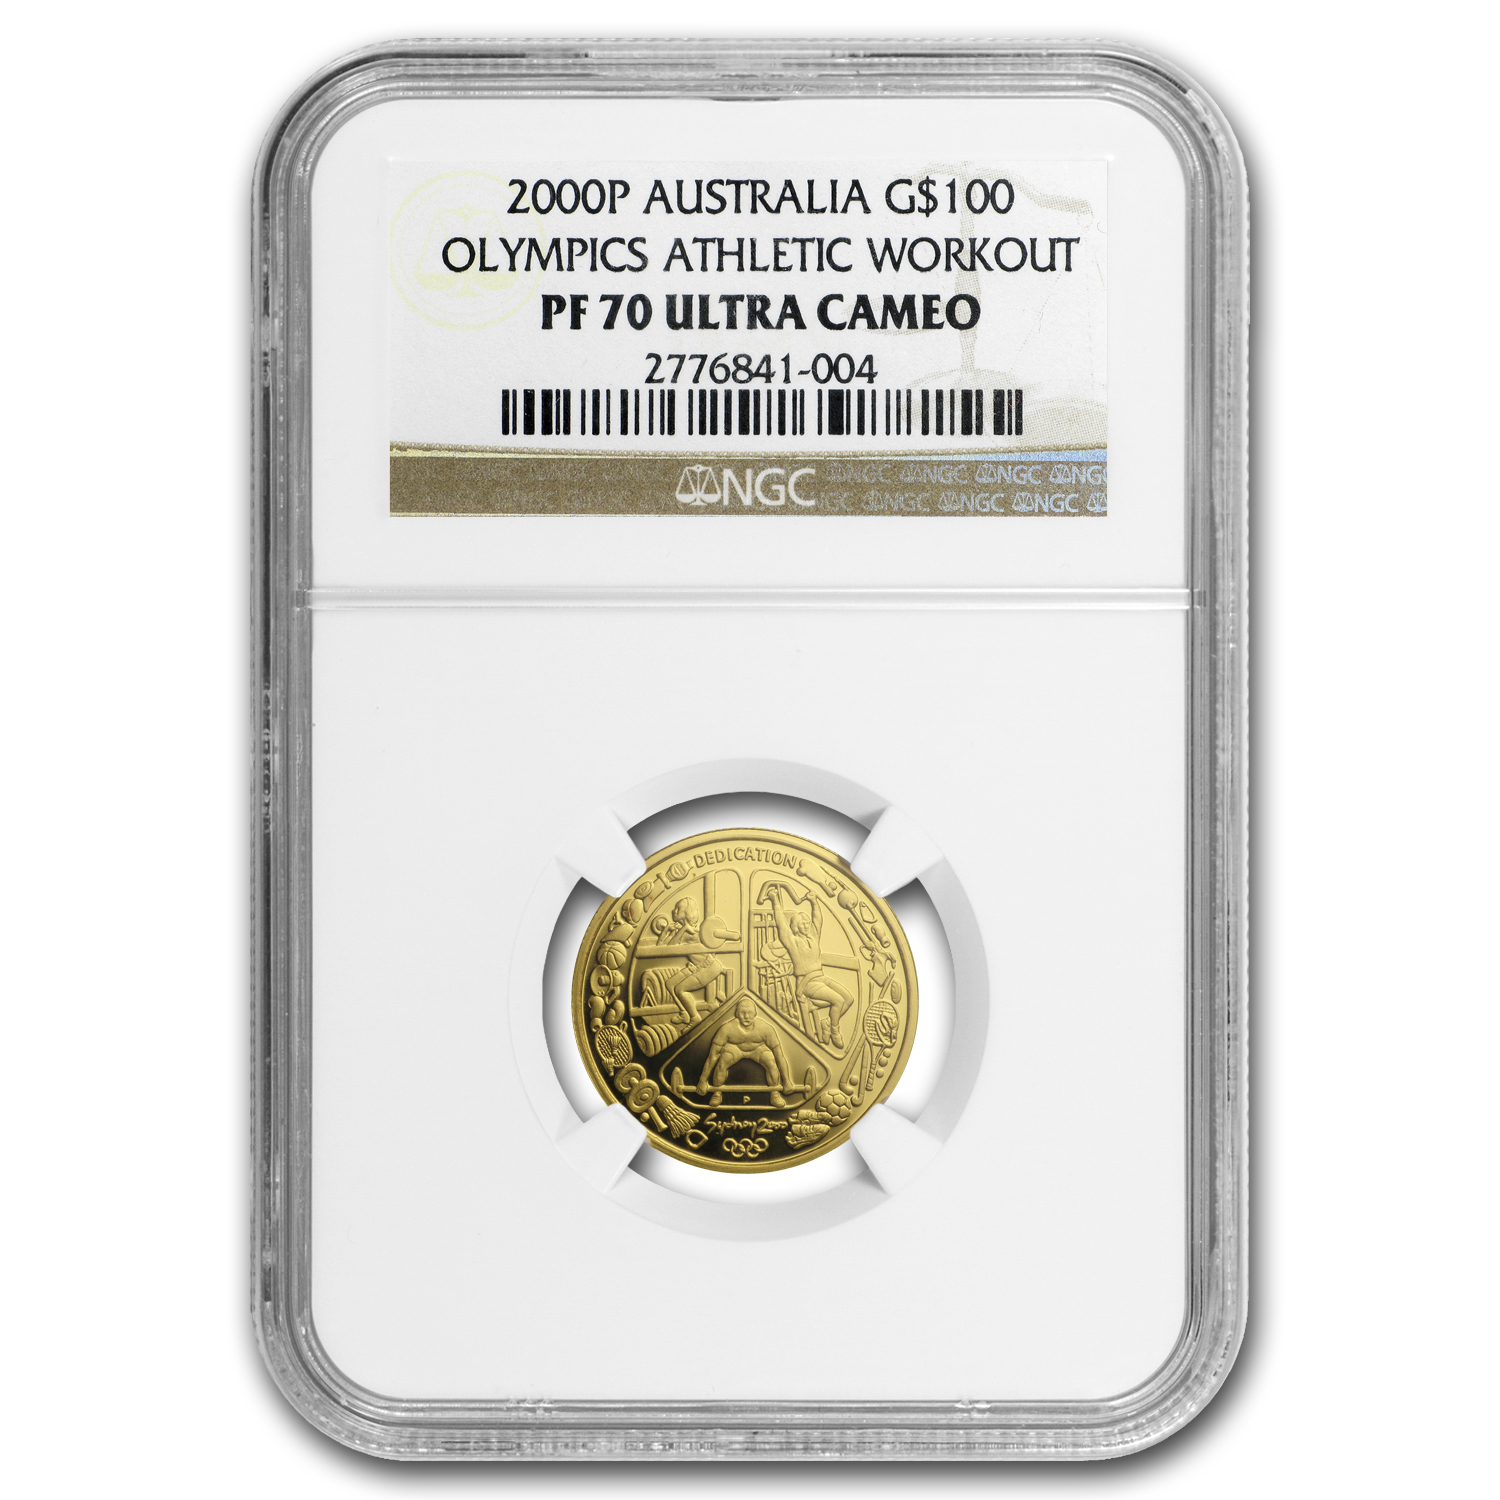 2000 Australia Proof Gold $100 Olympics Workout PF-70 NGC